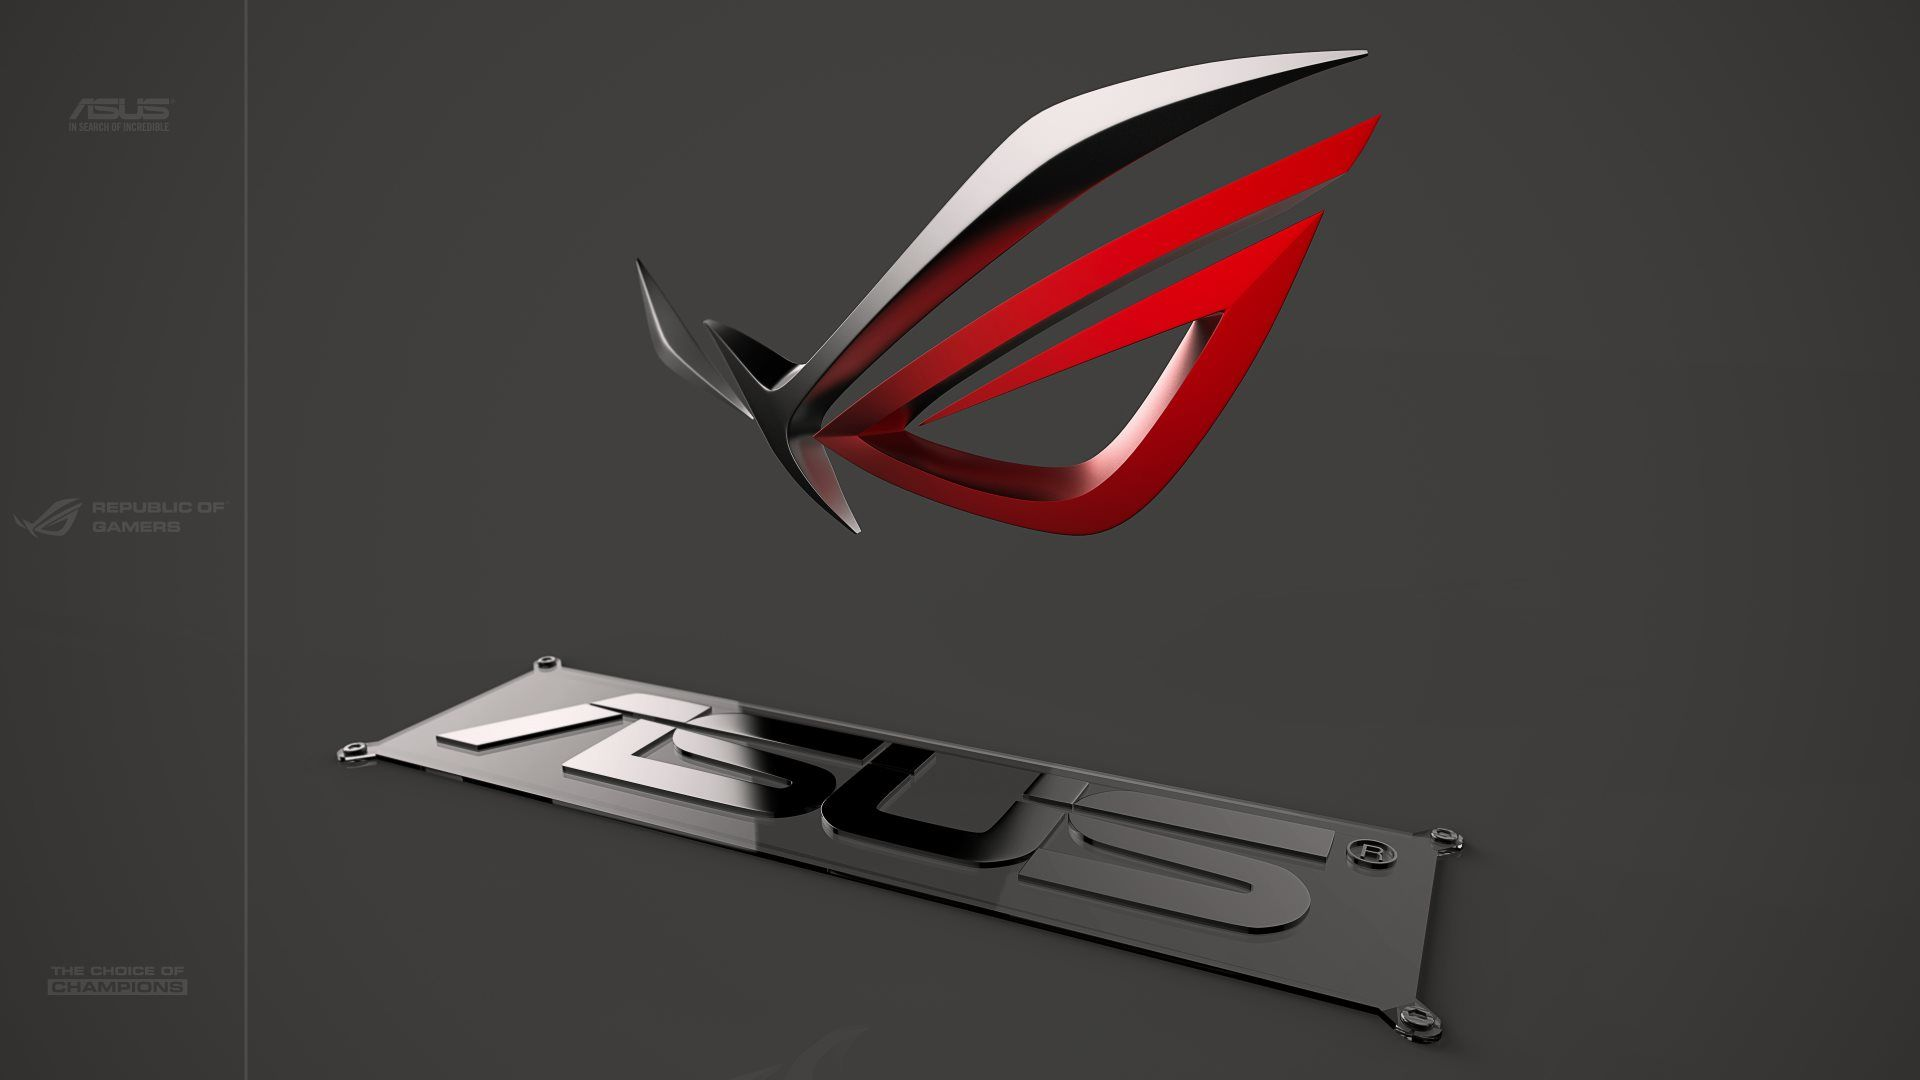 3d Asus Rog Republic Of Gamers Logo Walpaper The Republic Of